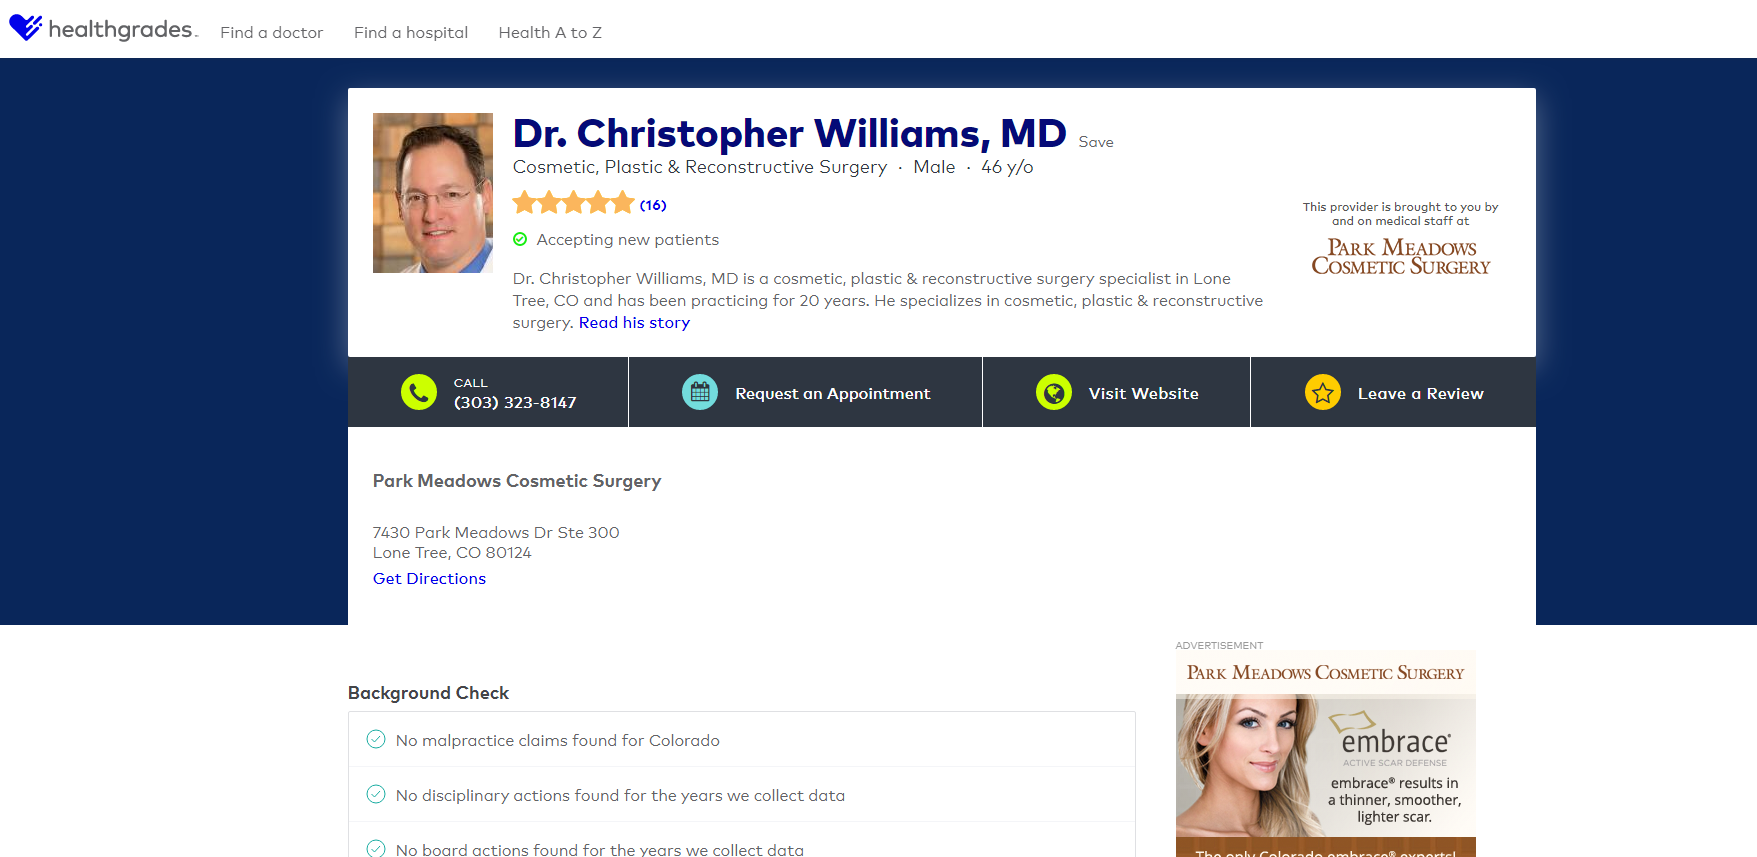 Healthgrades Premium Profile for plastic surgeon